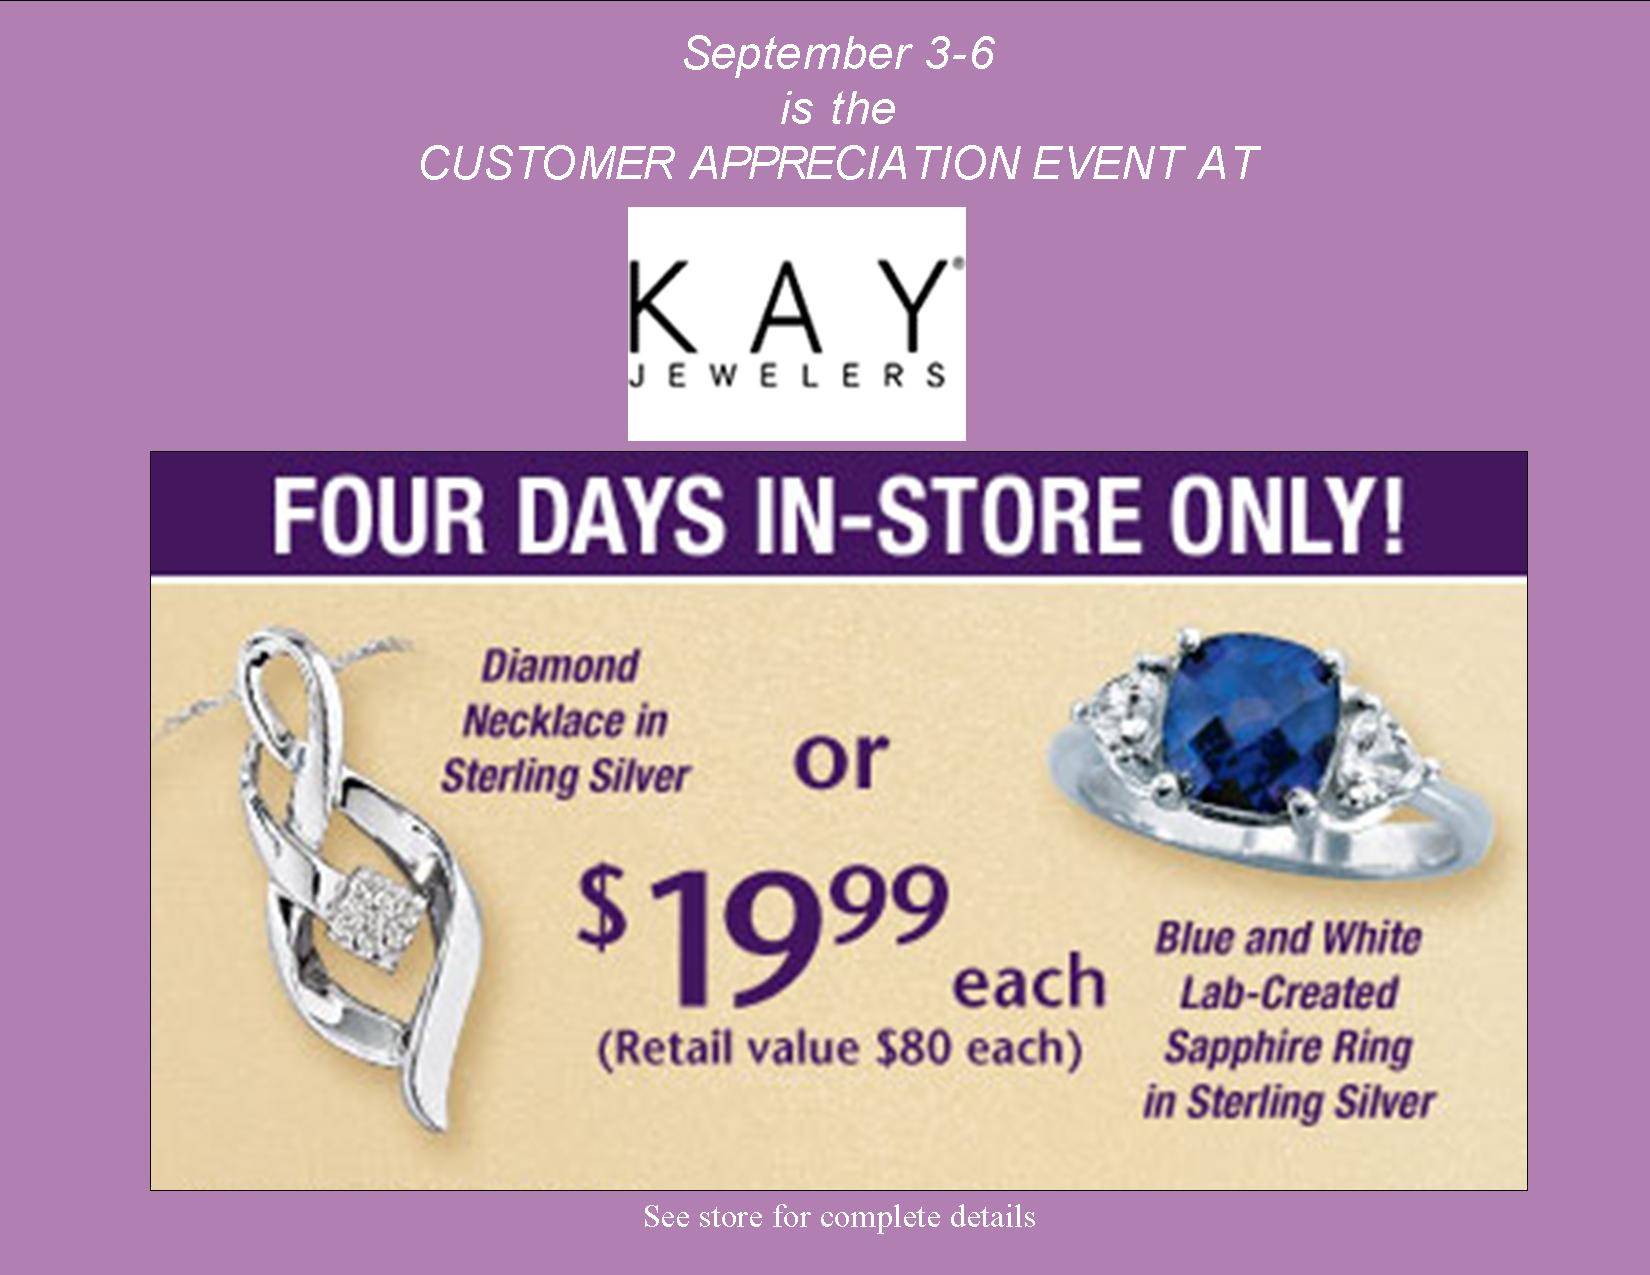 Customer Appreciation Event at Kay Jewelers